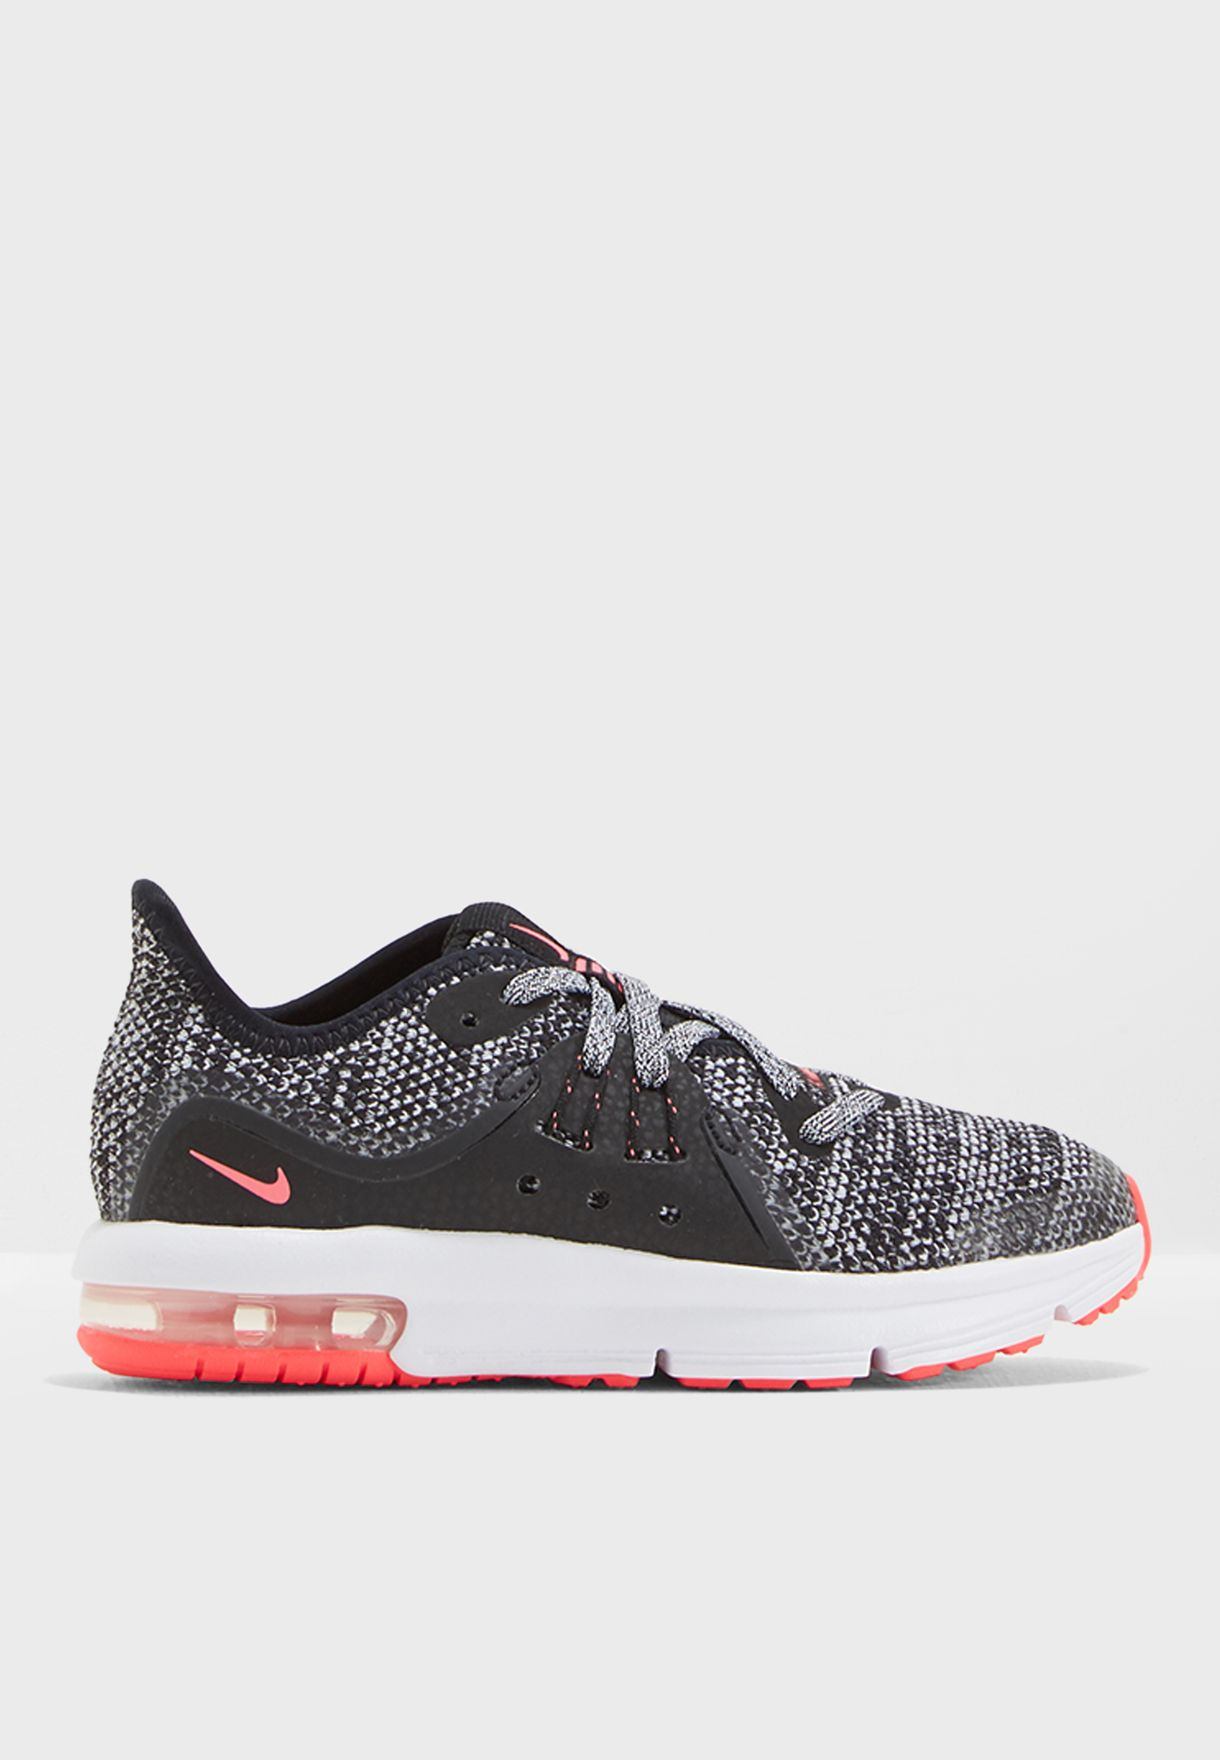 4901d04a98 Shop Nike monochrome Air Max Sequent 3 Kids AO1252-001 for Kids in ...